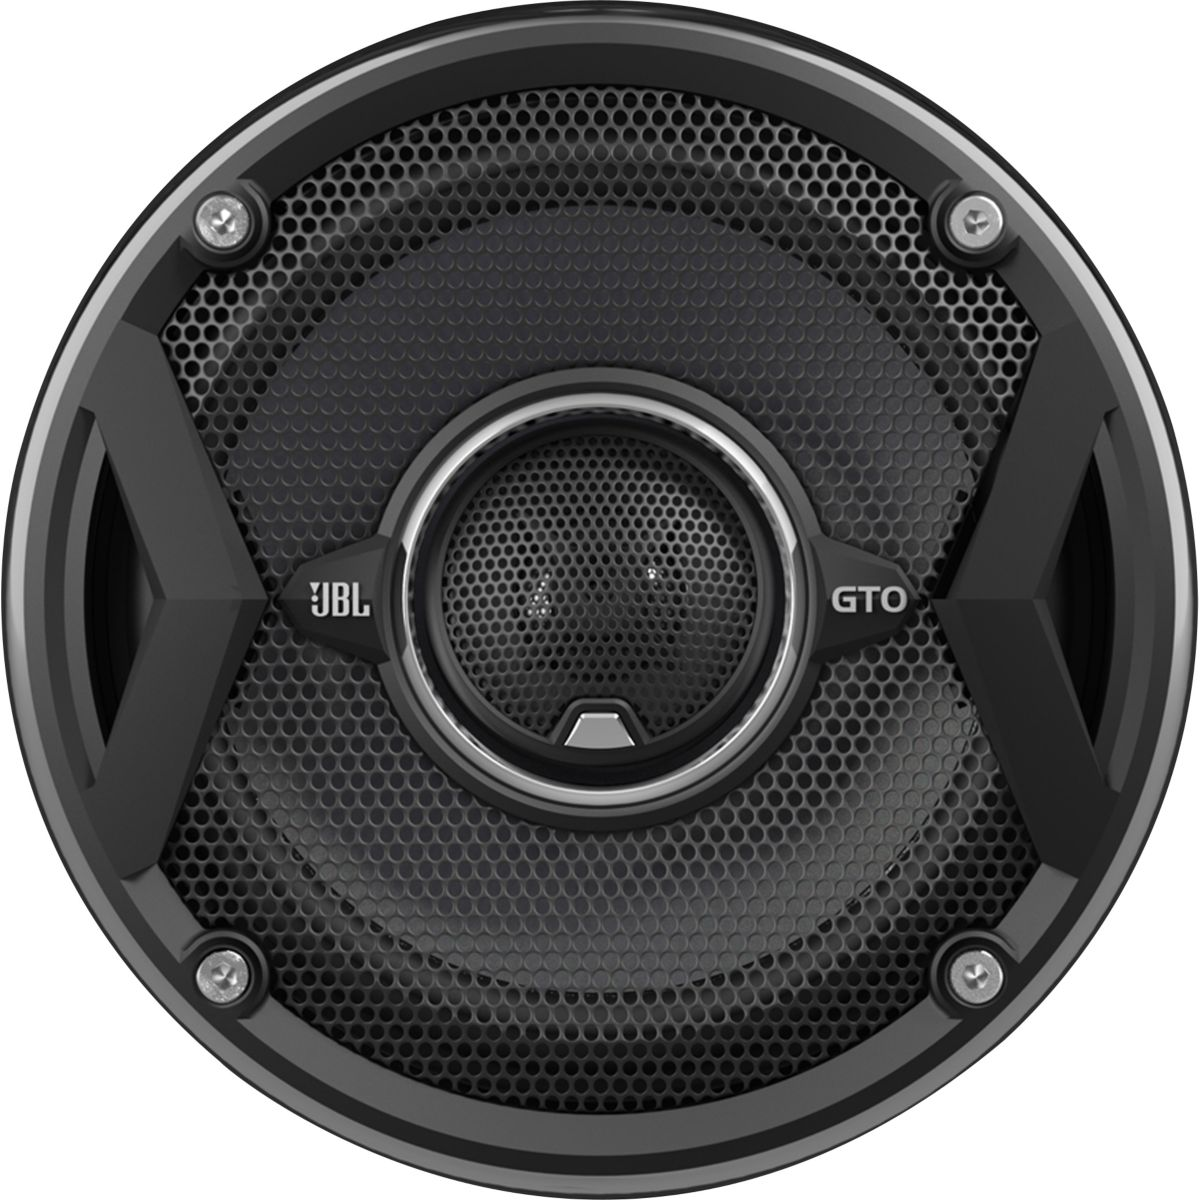 Haut-parleur JBL GTO 529 (coaxial) (photo)